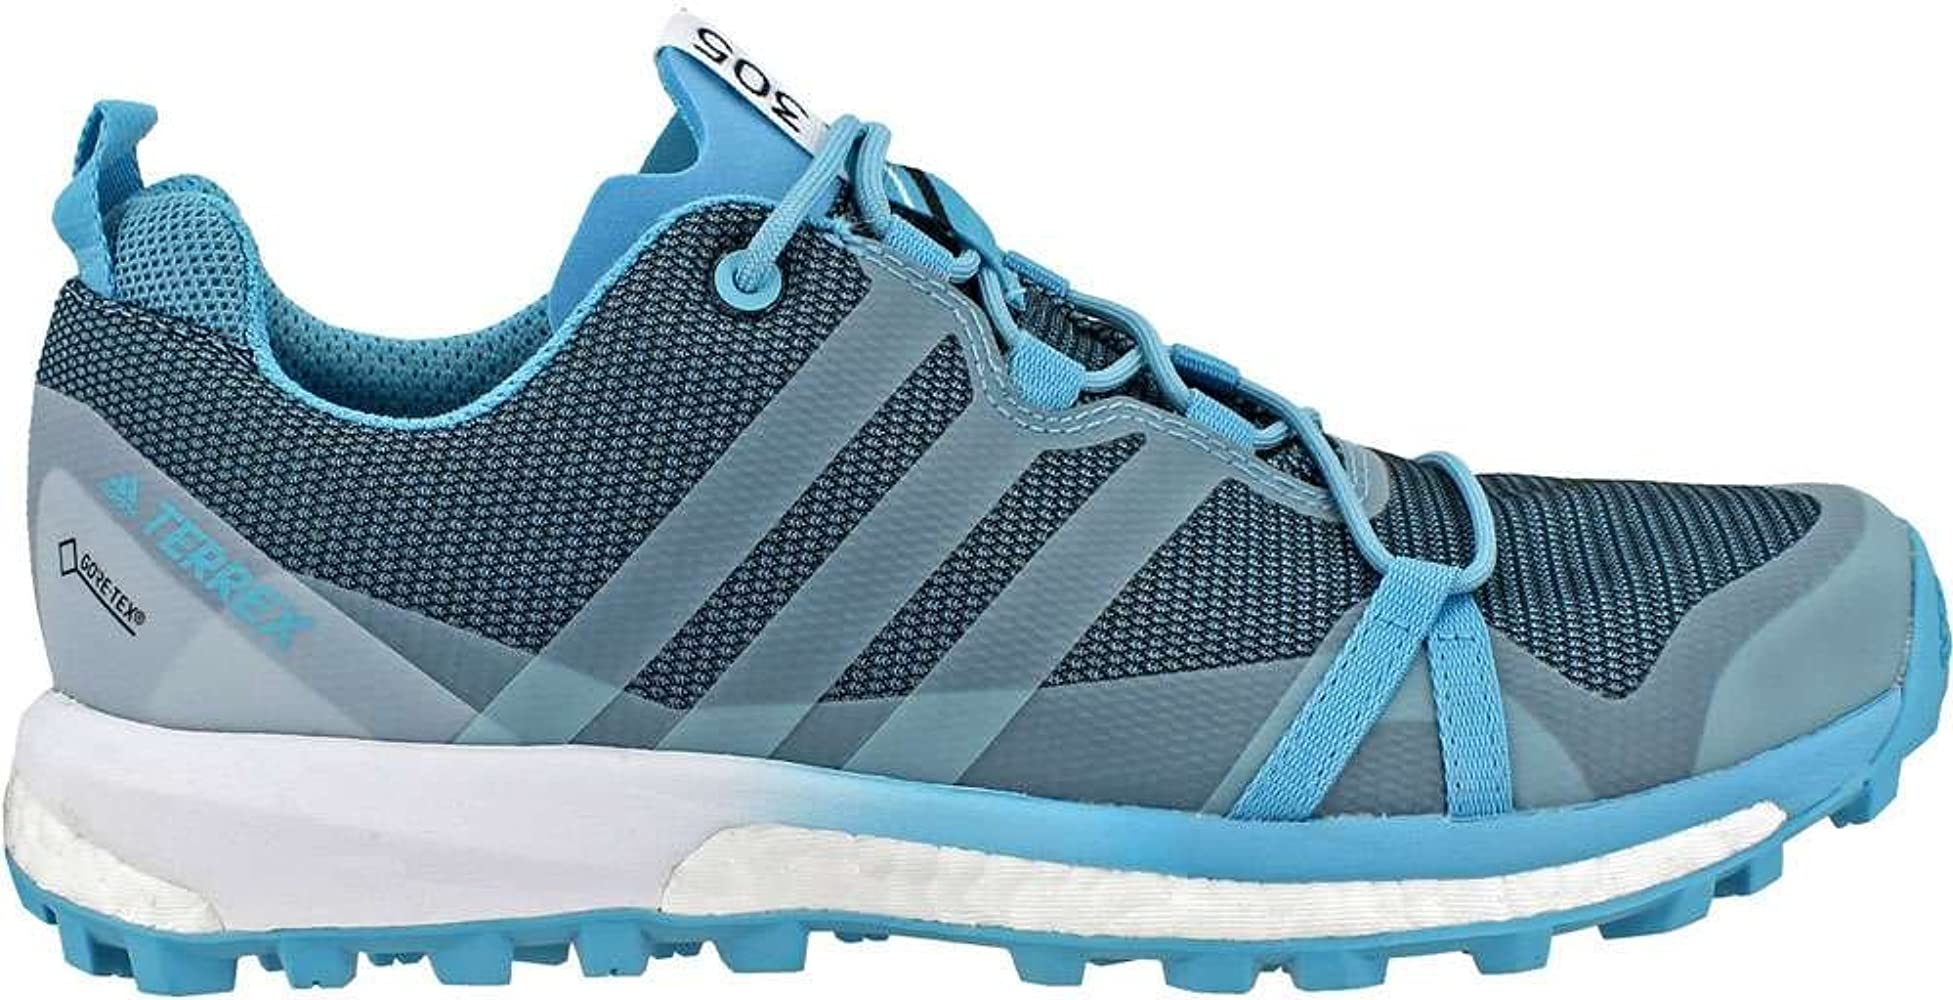 Gtx Vapour Aquawhite Terrex Agravic Blueclear Athletic Women's Shoe pMVUGqSz